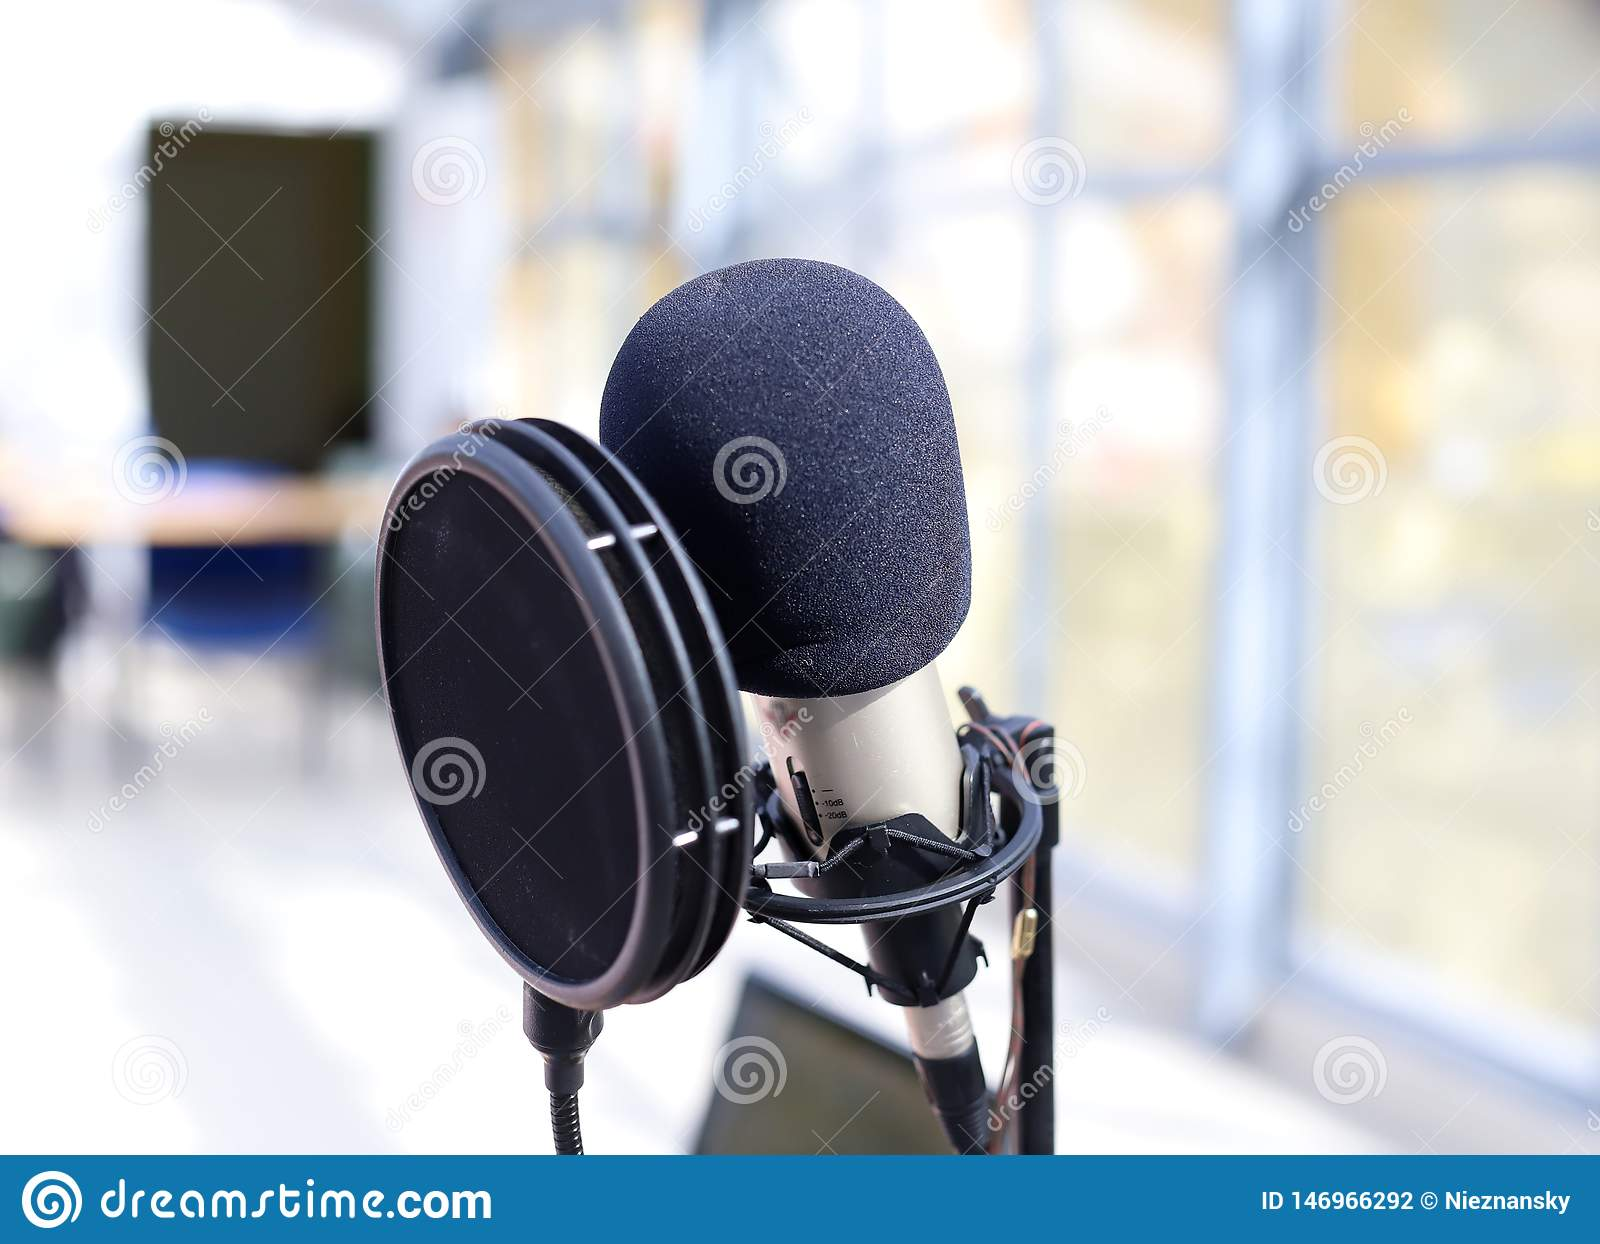 Professional microphone for vocal recording